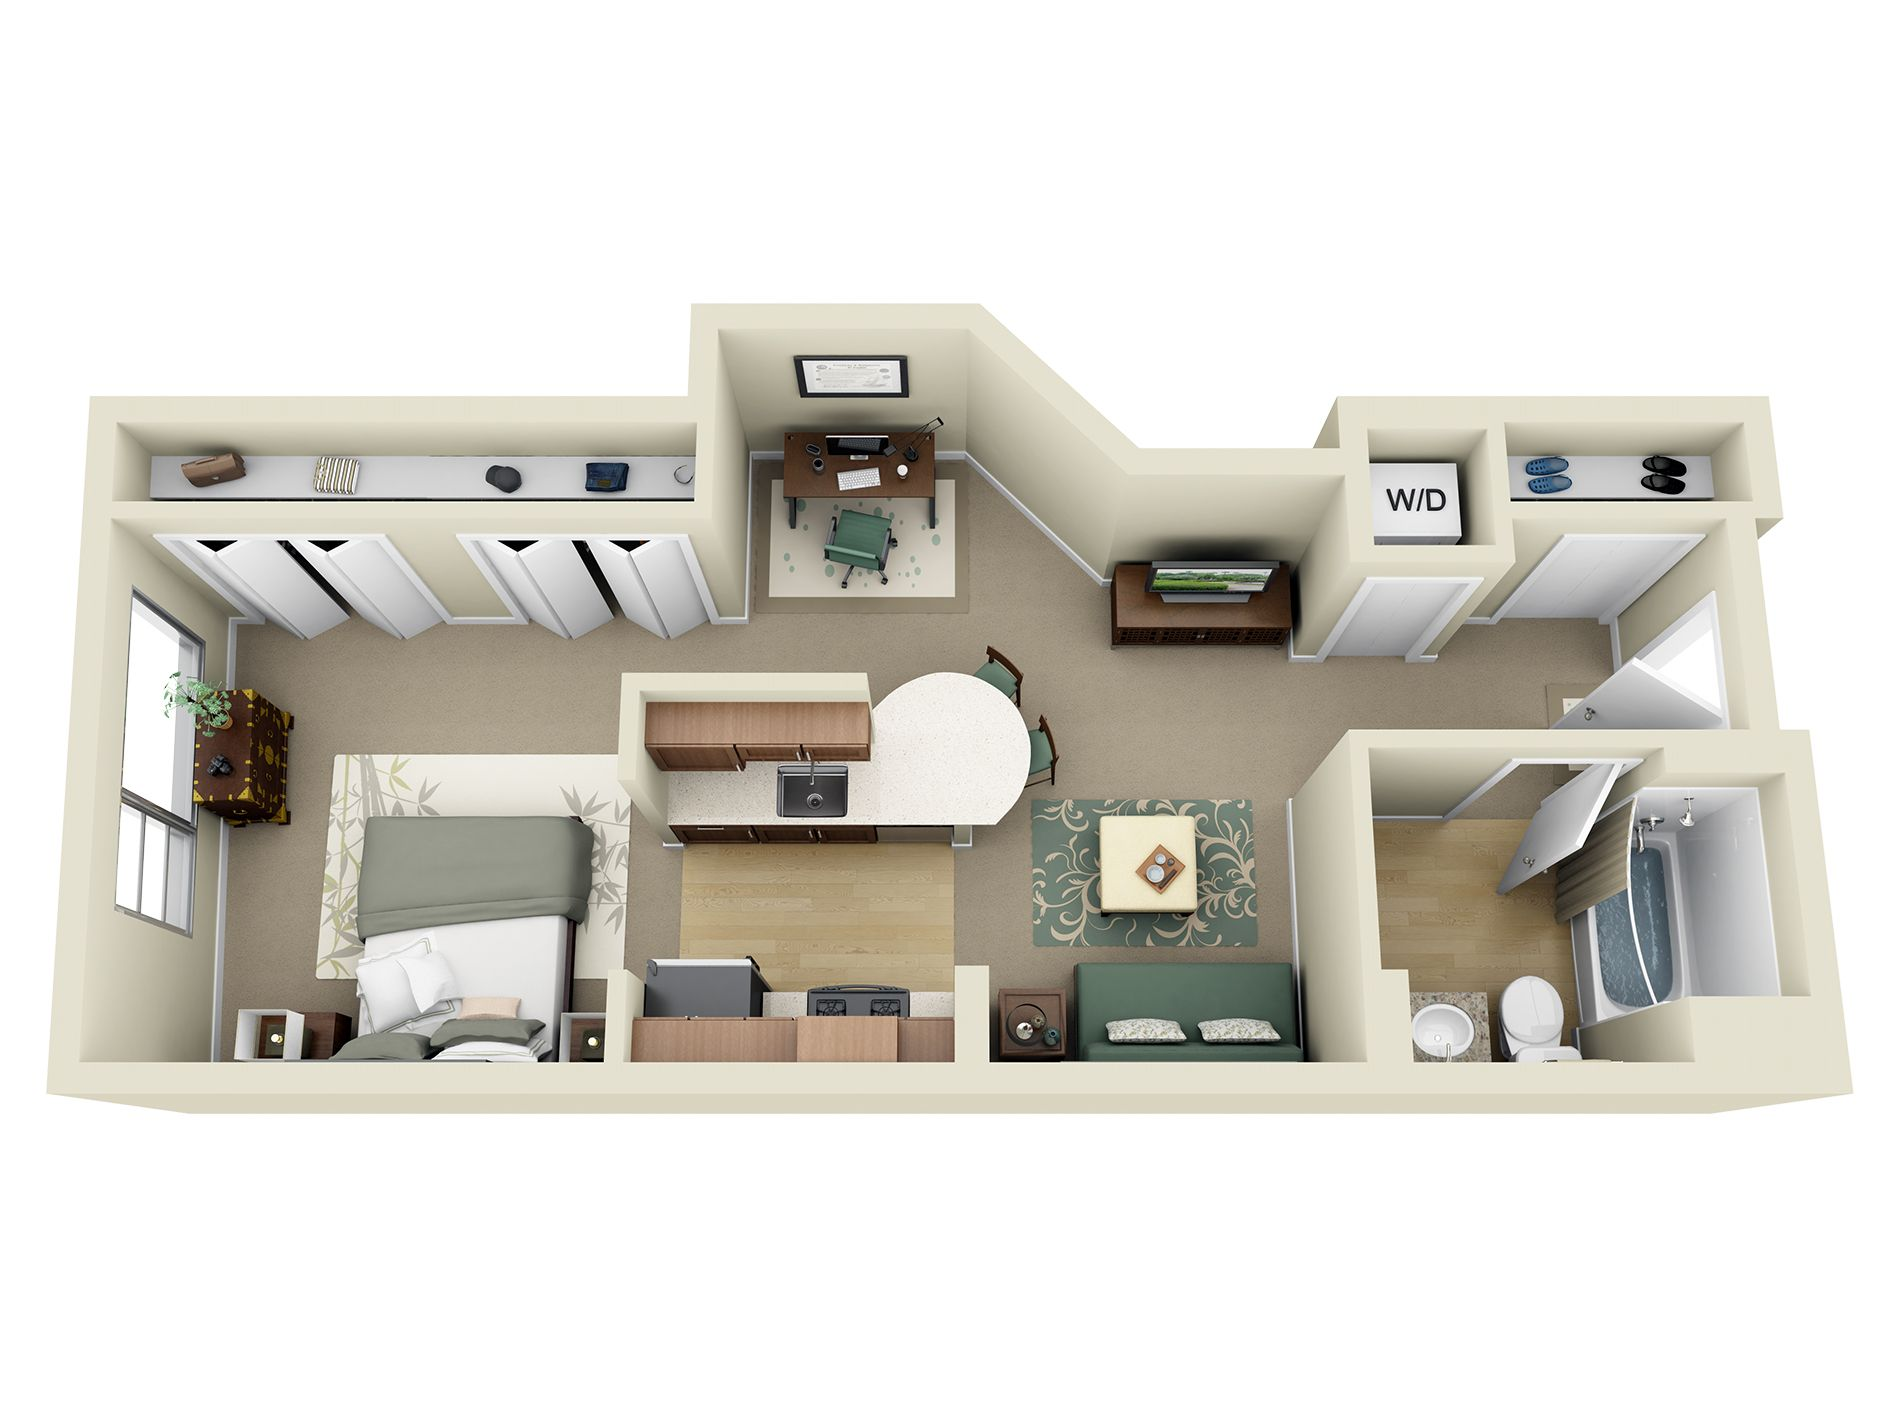 Studio 1 2 And 3 Bedroom Apartments In Los Angeles Apartment Layout Bedroom Apartment Apartment Floor Plans